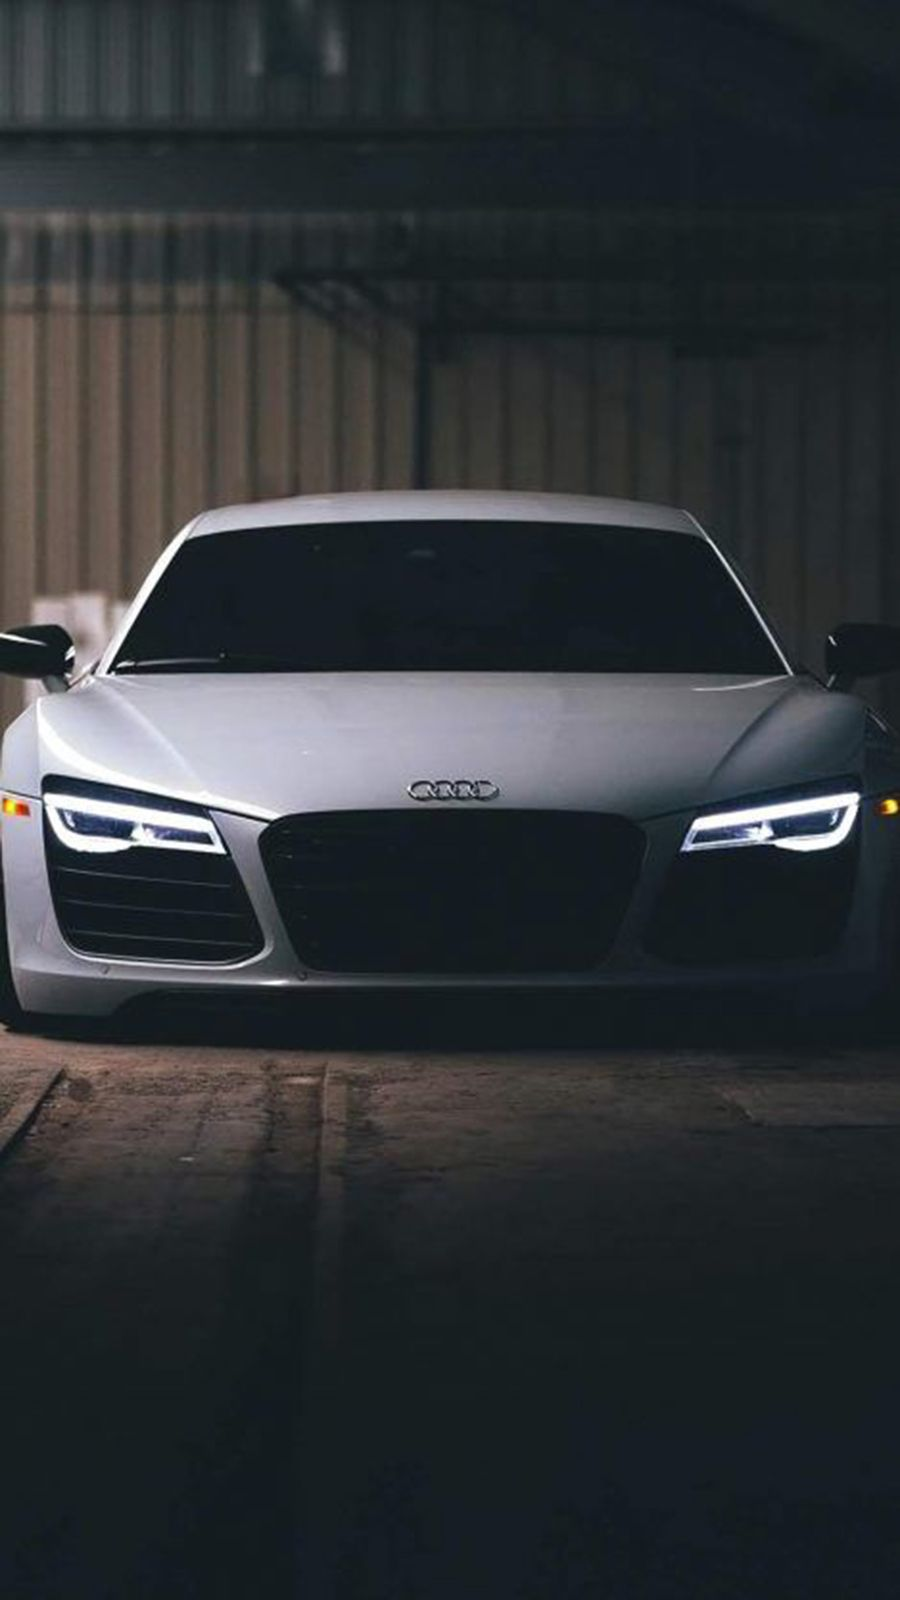 Audi Logo Hd Wallpaper For Iphone